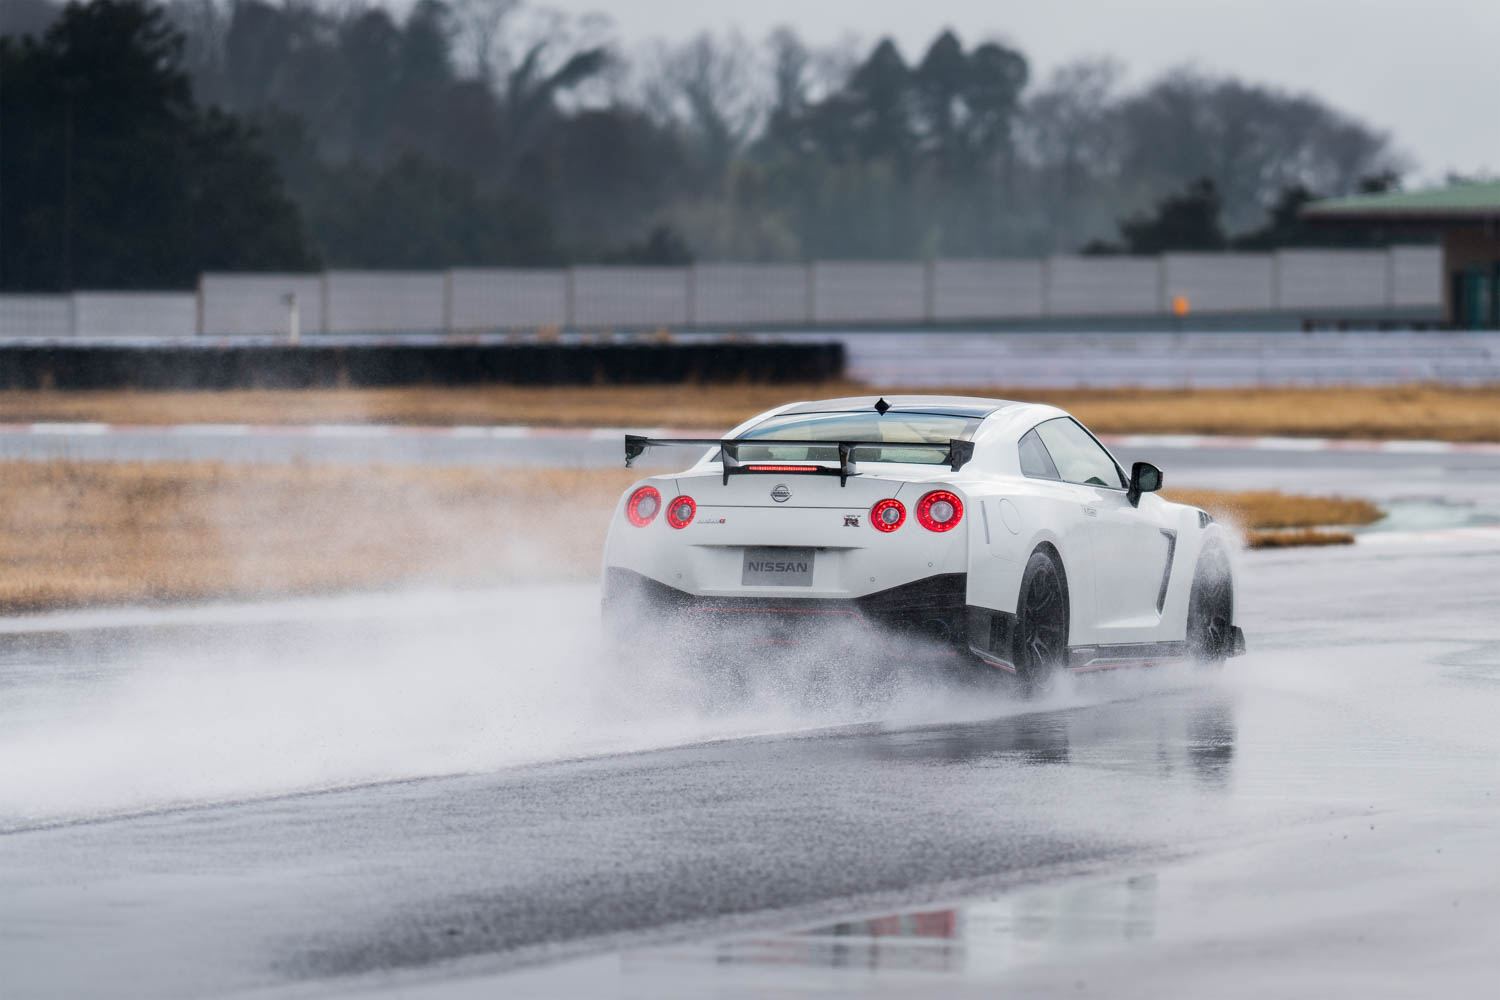 Nissan GT-R NISMO driving